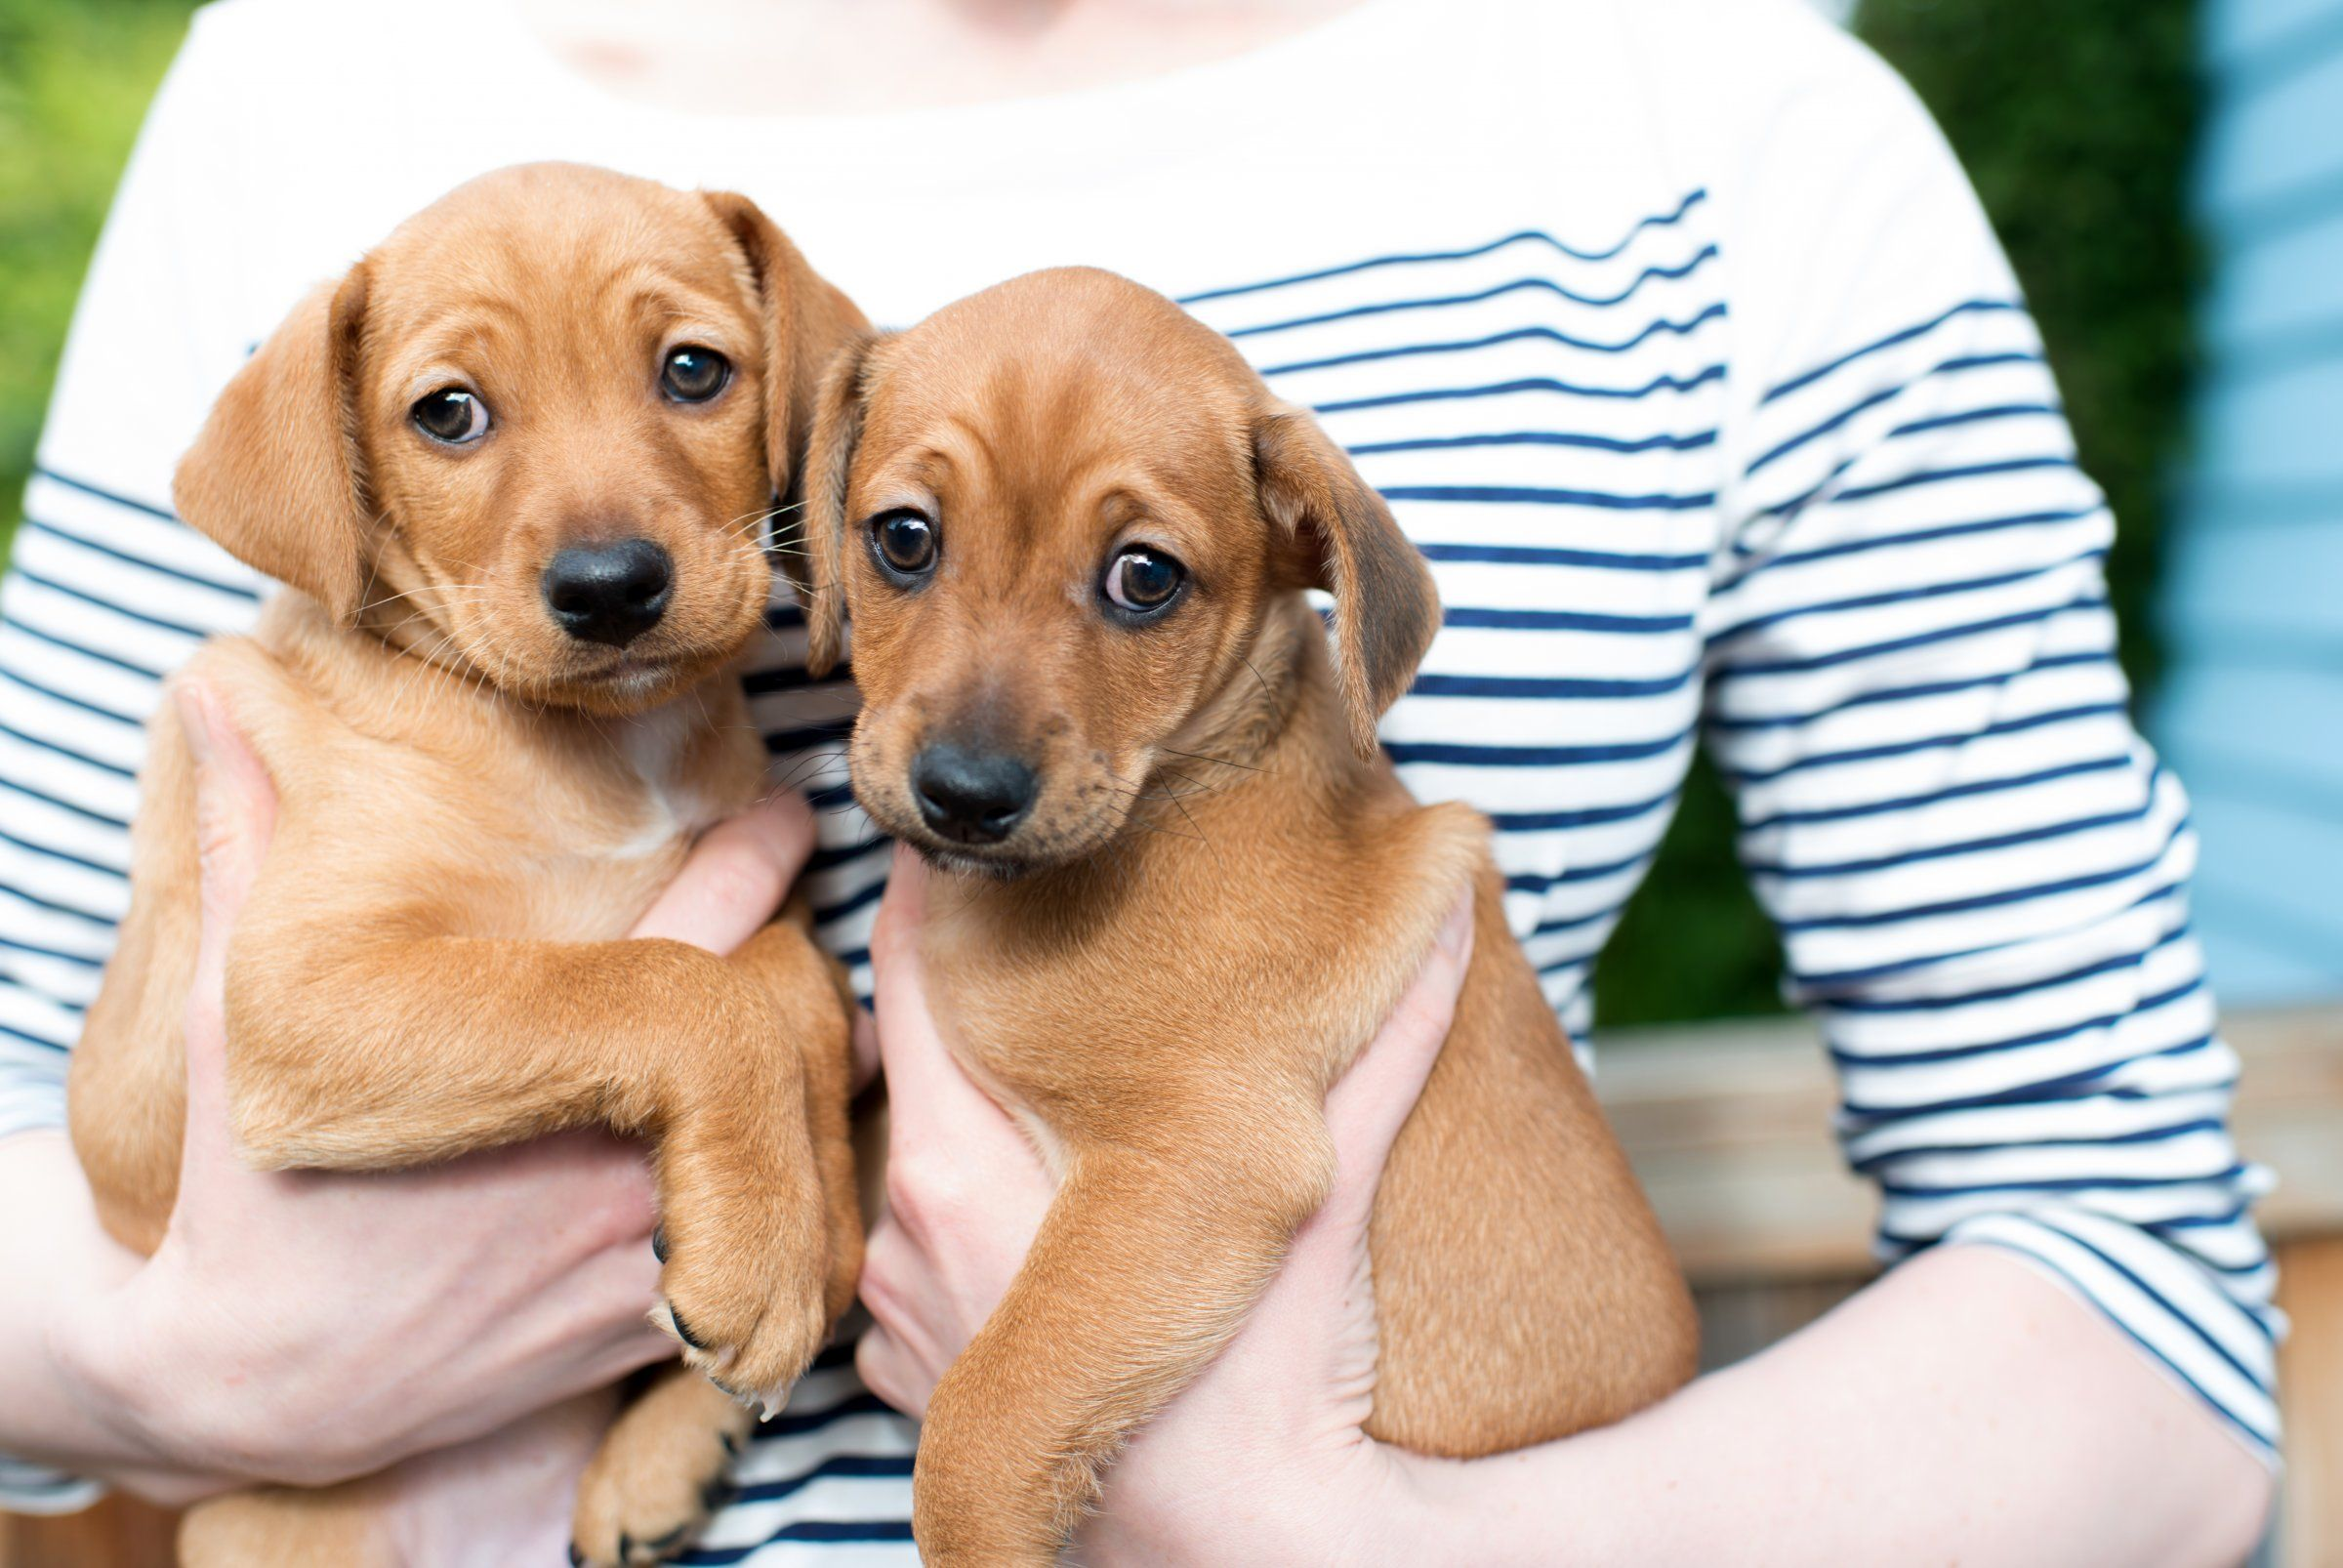 Heres why pet care is a true recessionproof industry